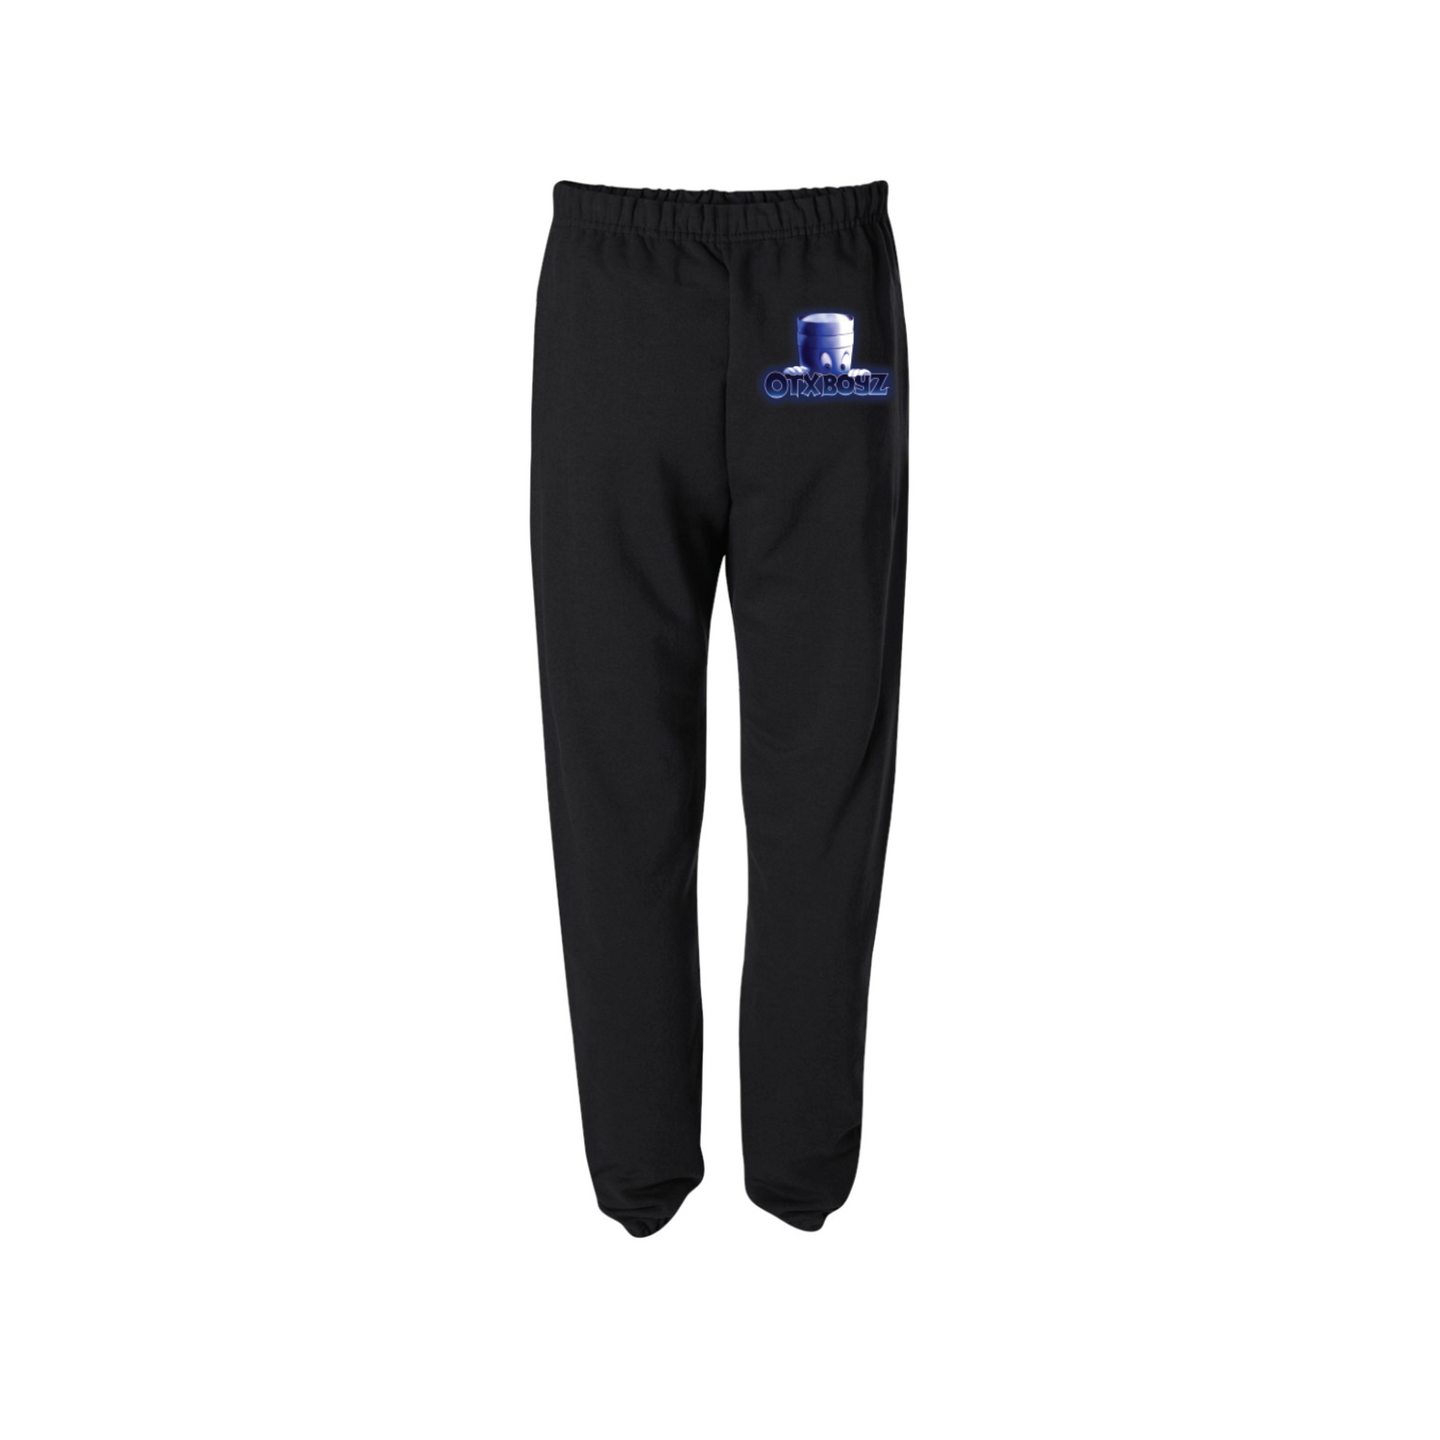 CASPER SWEATPANTS: BLACK/BLUE